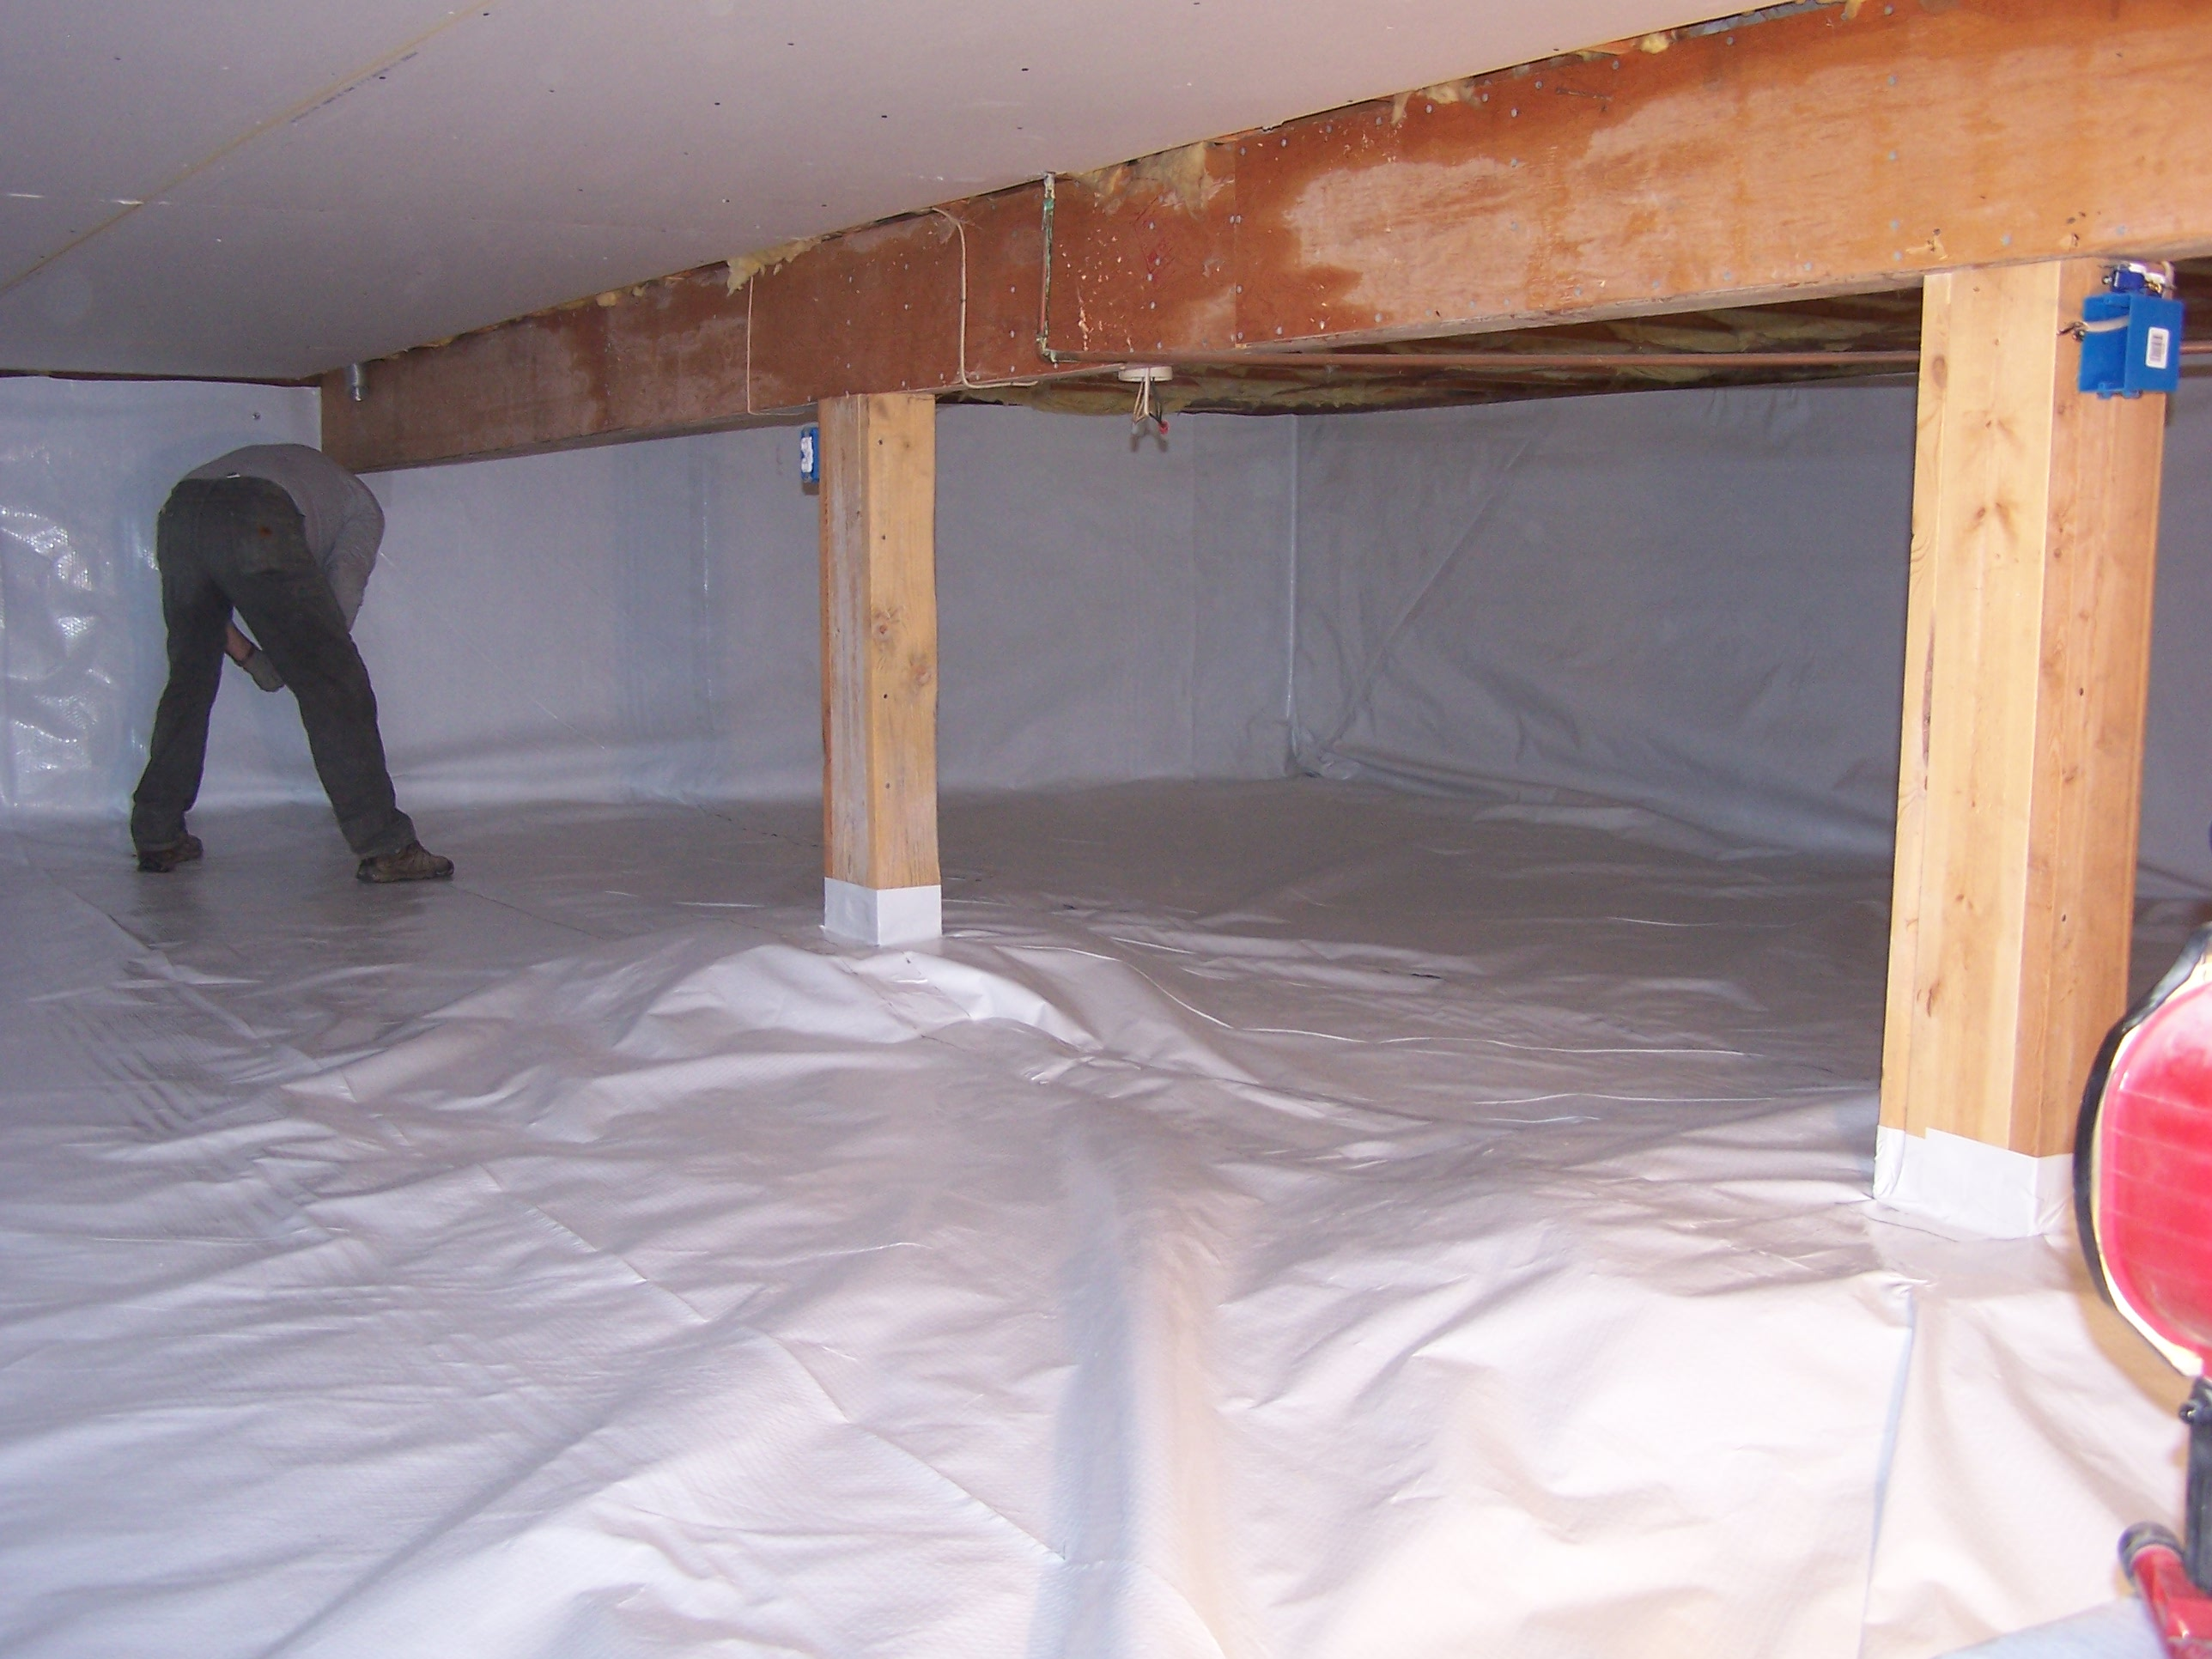 When Combined With A MBS Drain Or Sump System, Your Crawlspace Can Be  Turned Into A Safe And Clean Environment For Storage, In Addition To  Promoting More ...